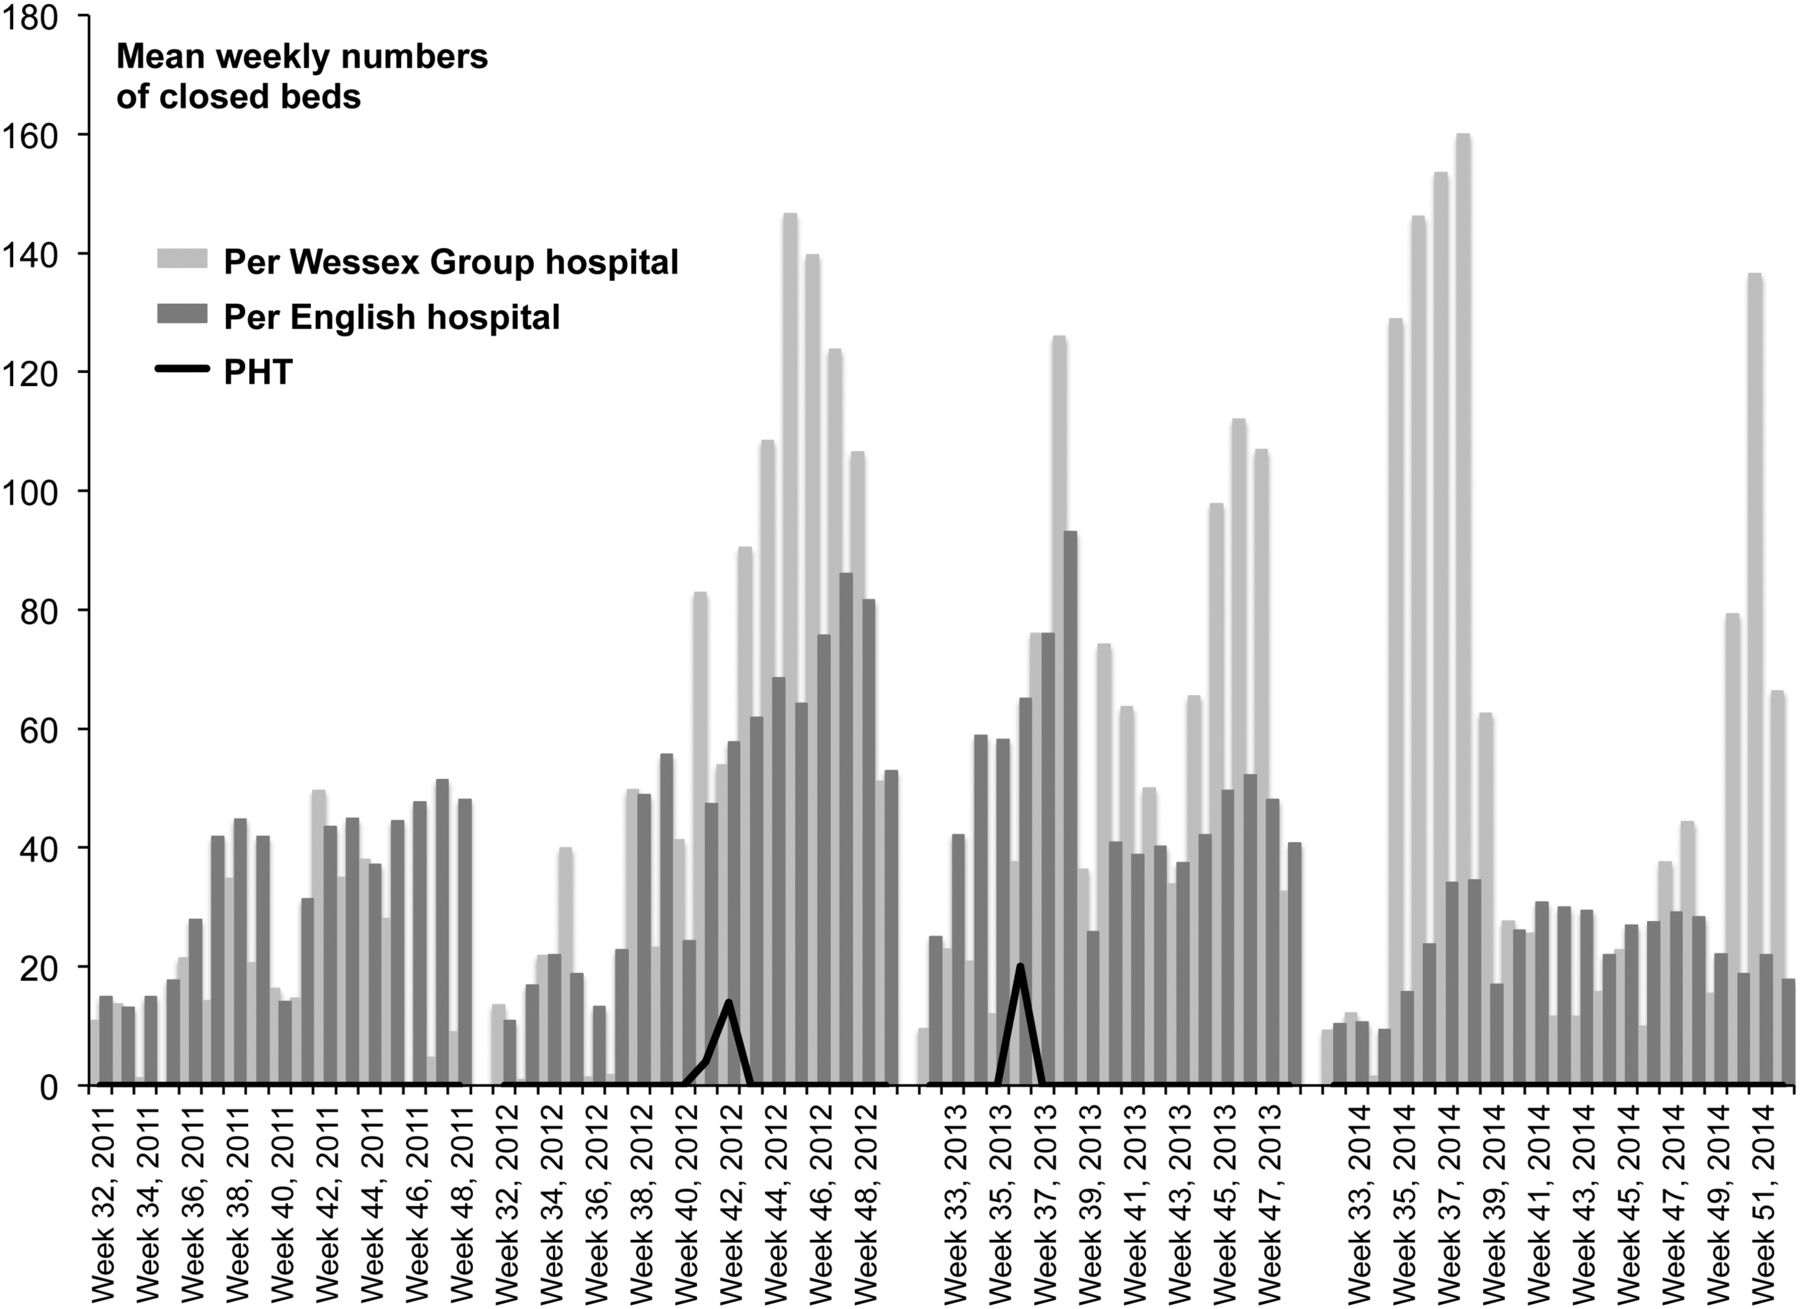 Reducing the number and impact of outbreaks of nosocomial